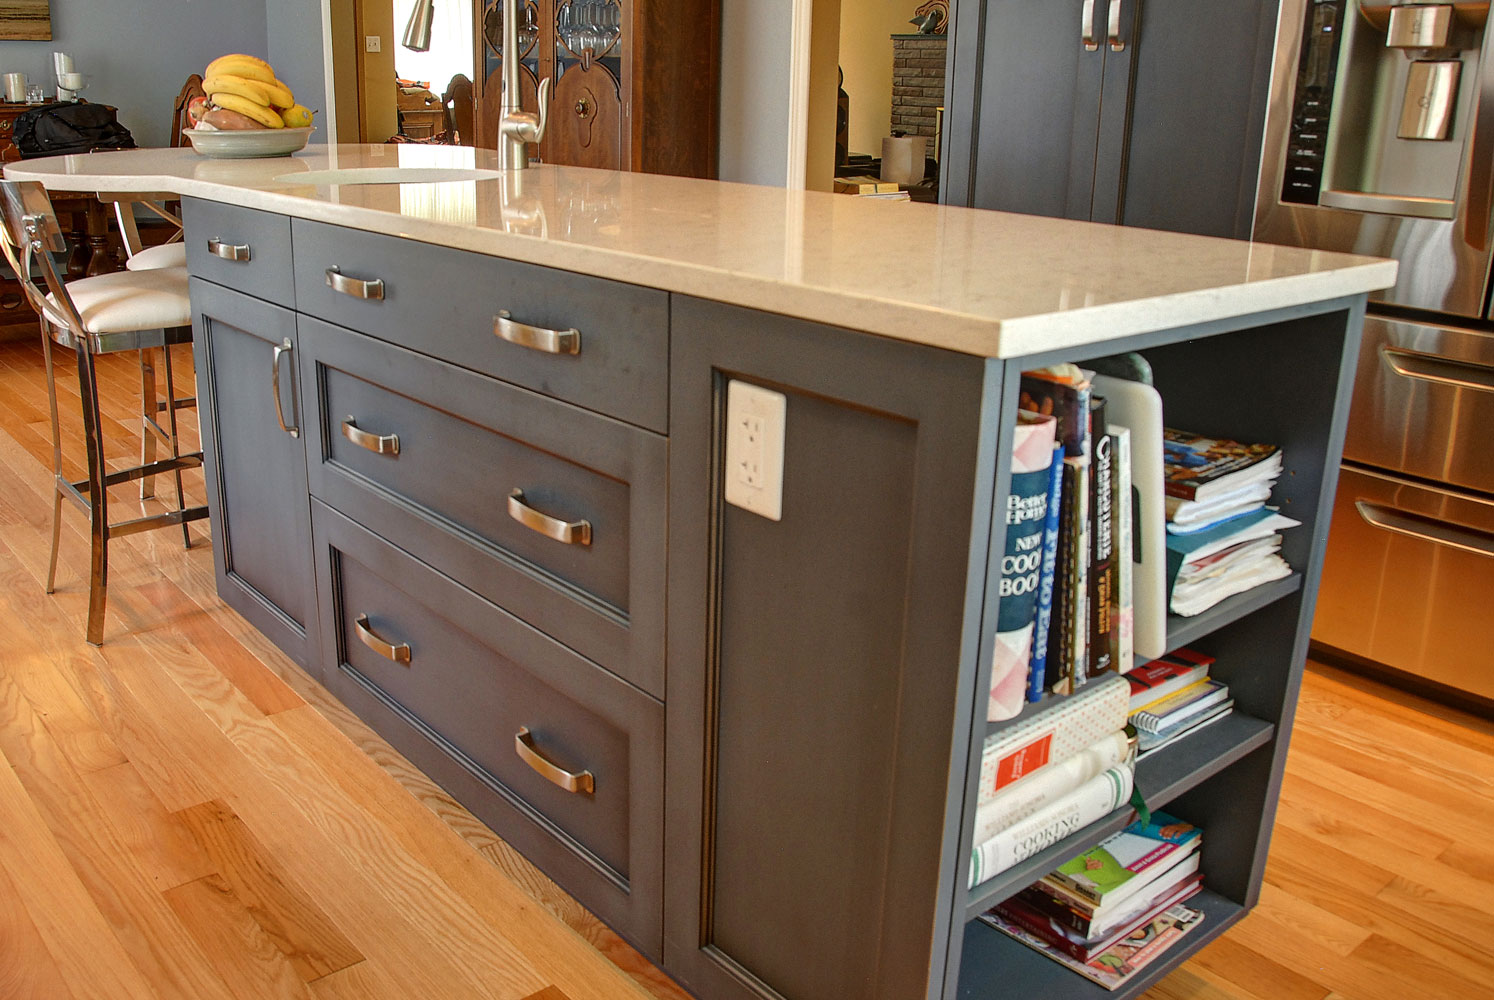 Kitchen island with open cabinets on one end and rounded counter on other end